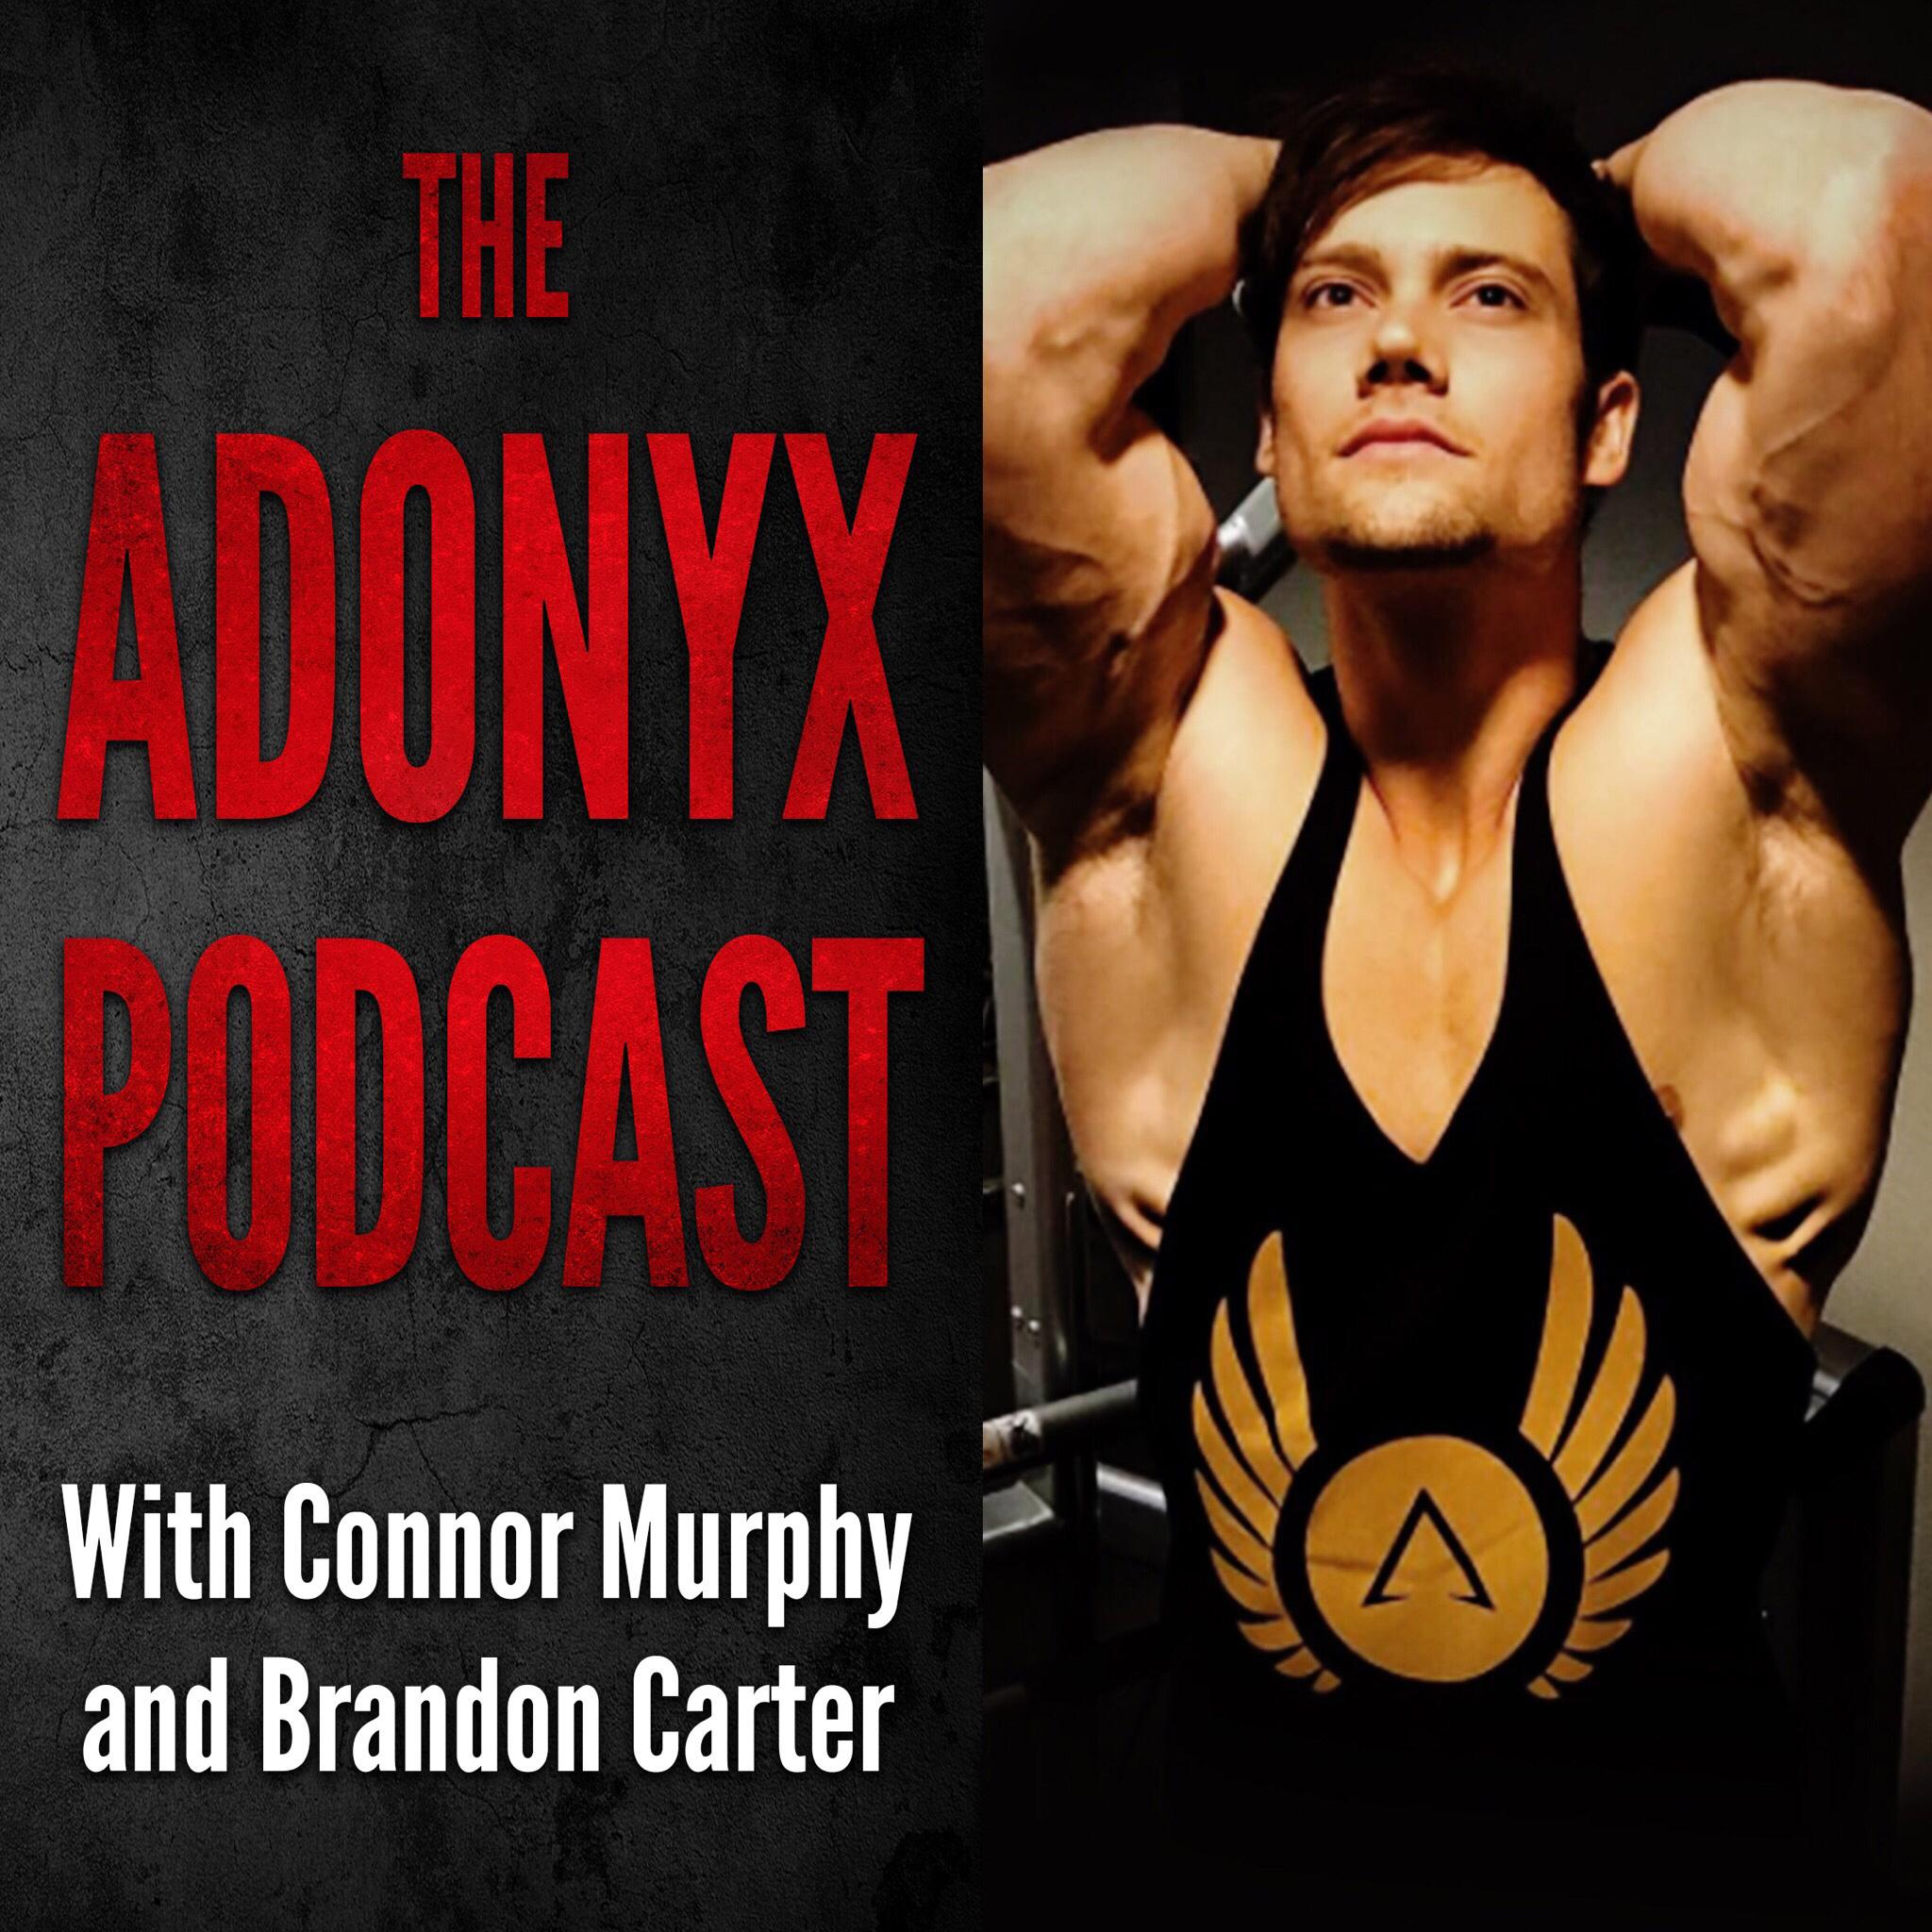 The Adonyx Podcast with Connor Murphy and Brandon Carter